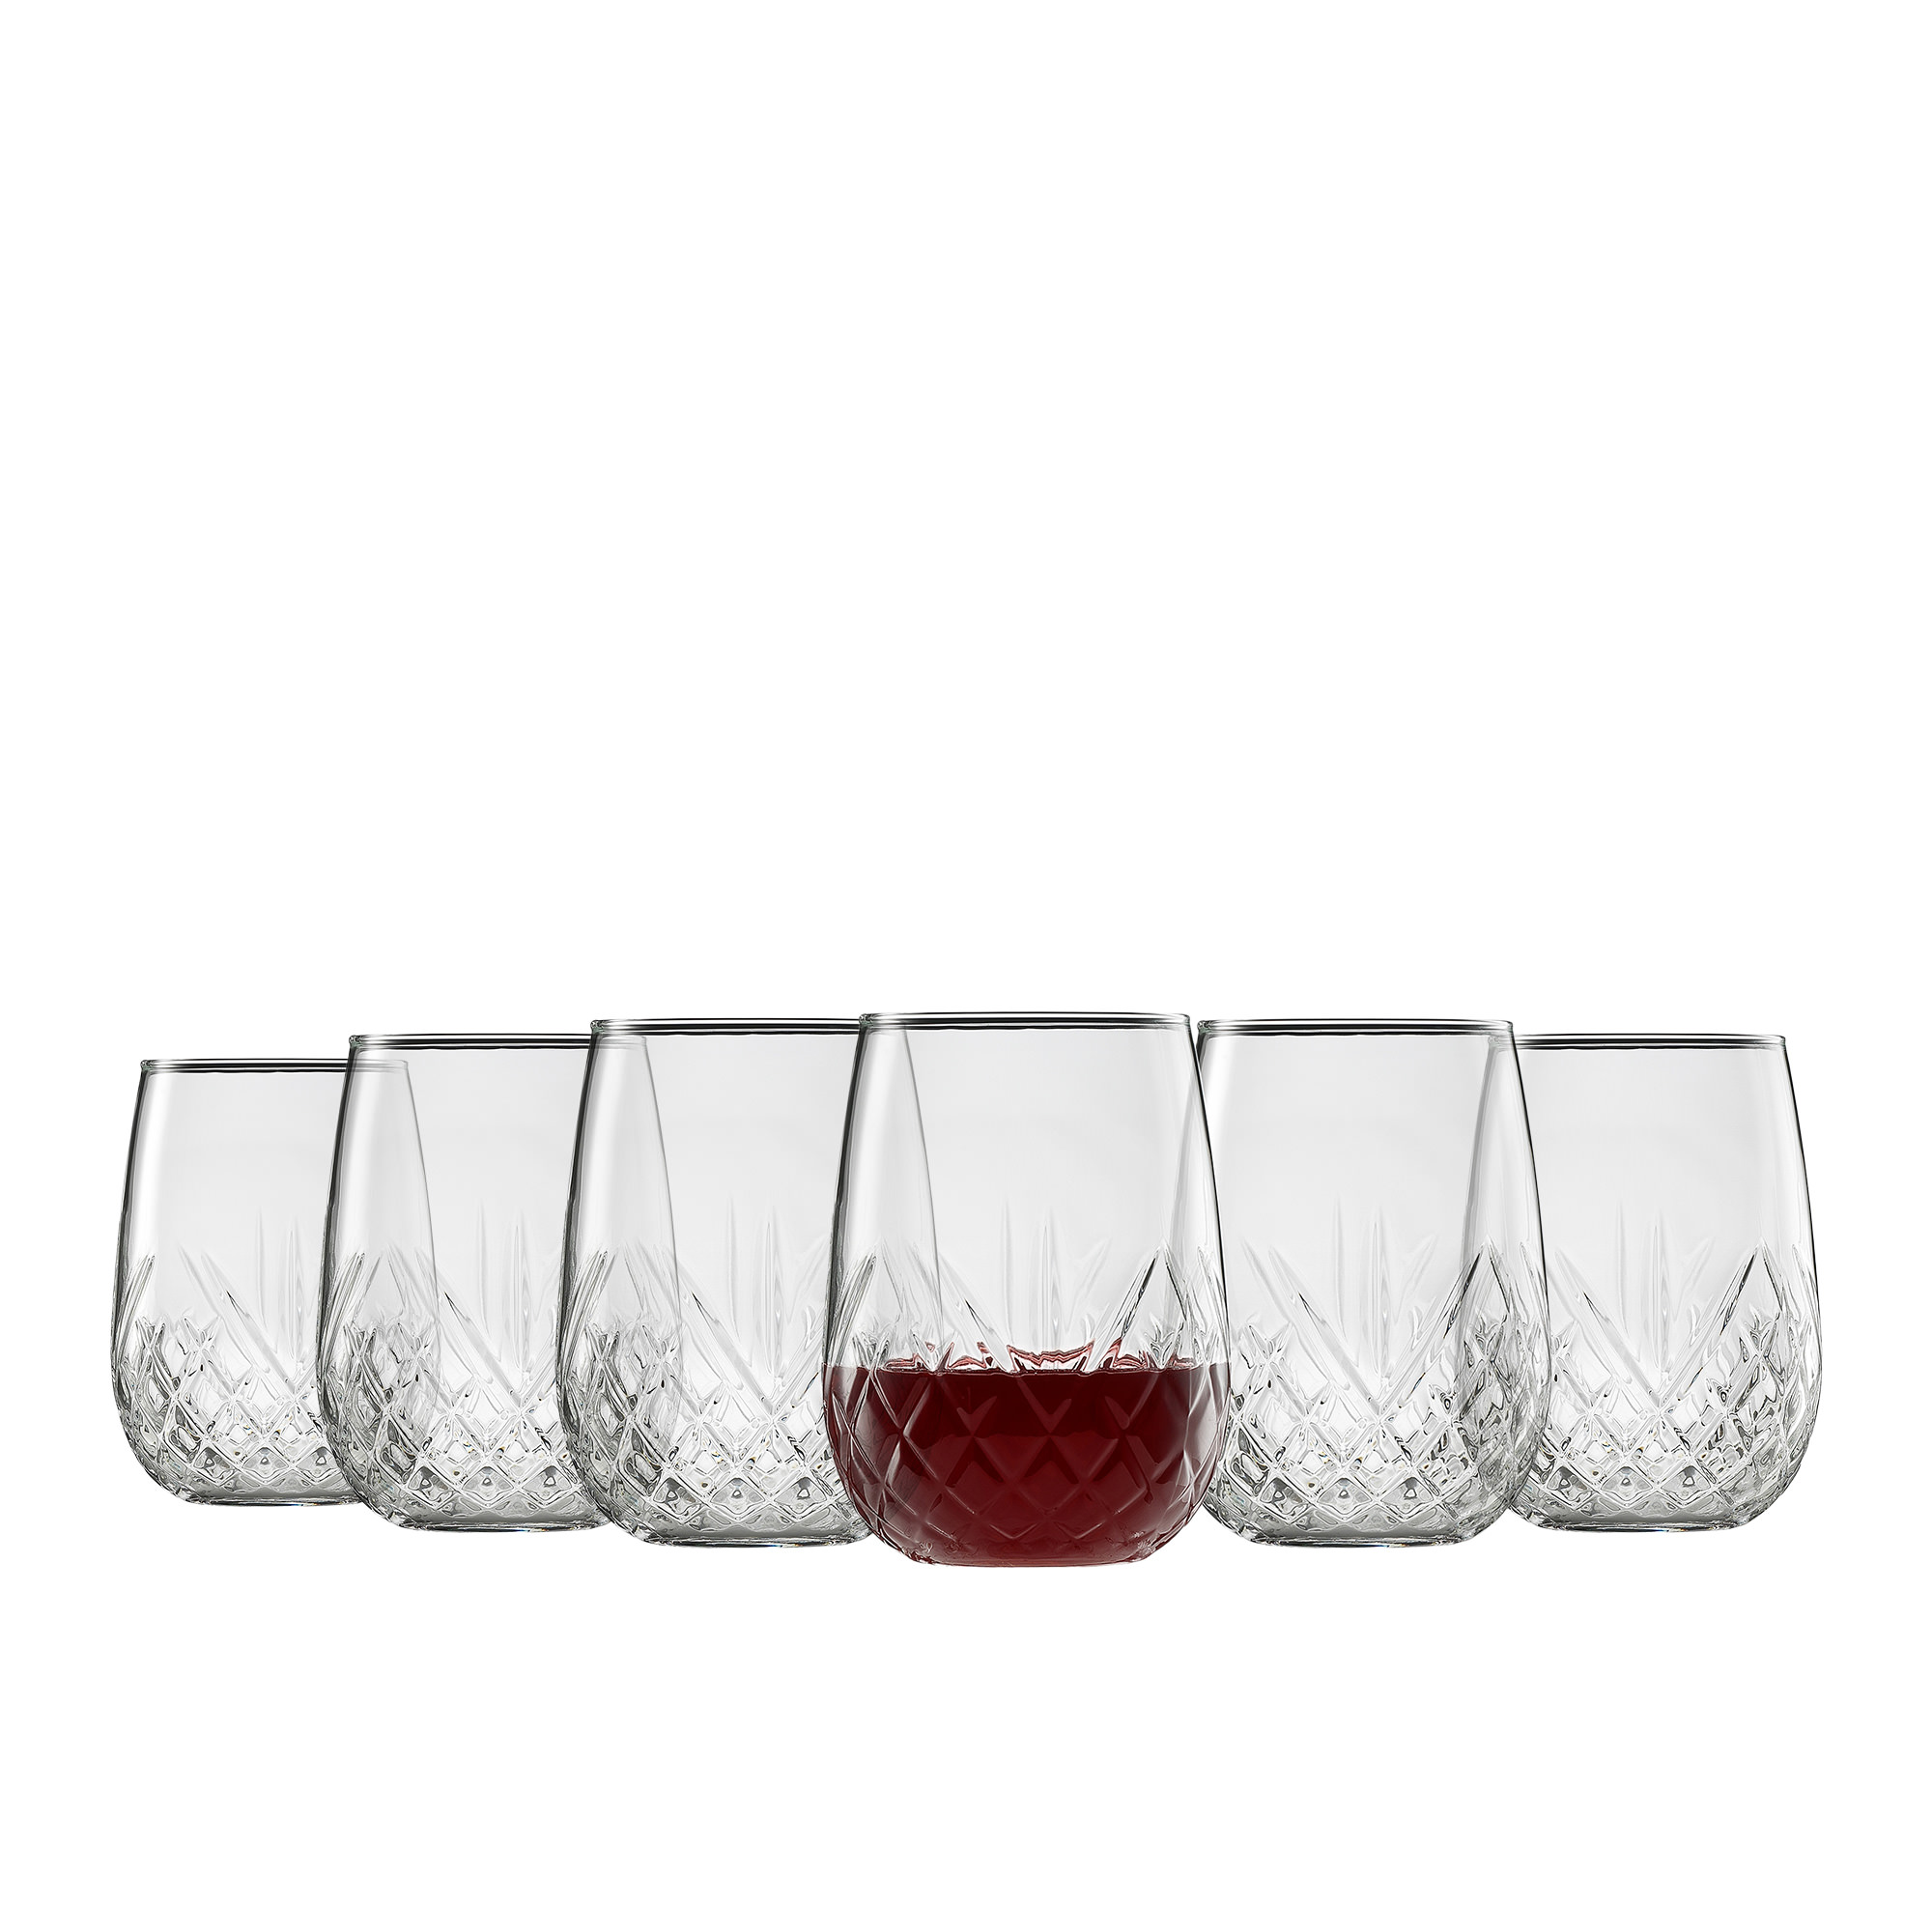 Ecology Carmen 6pc Stemless Wine Glass Set 490ml